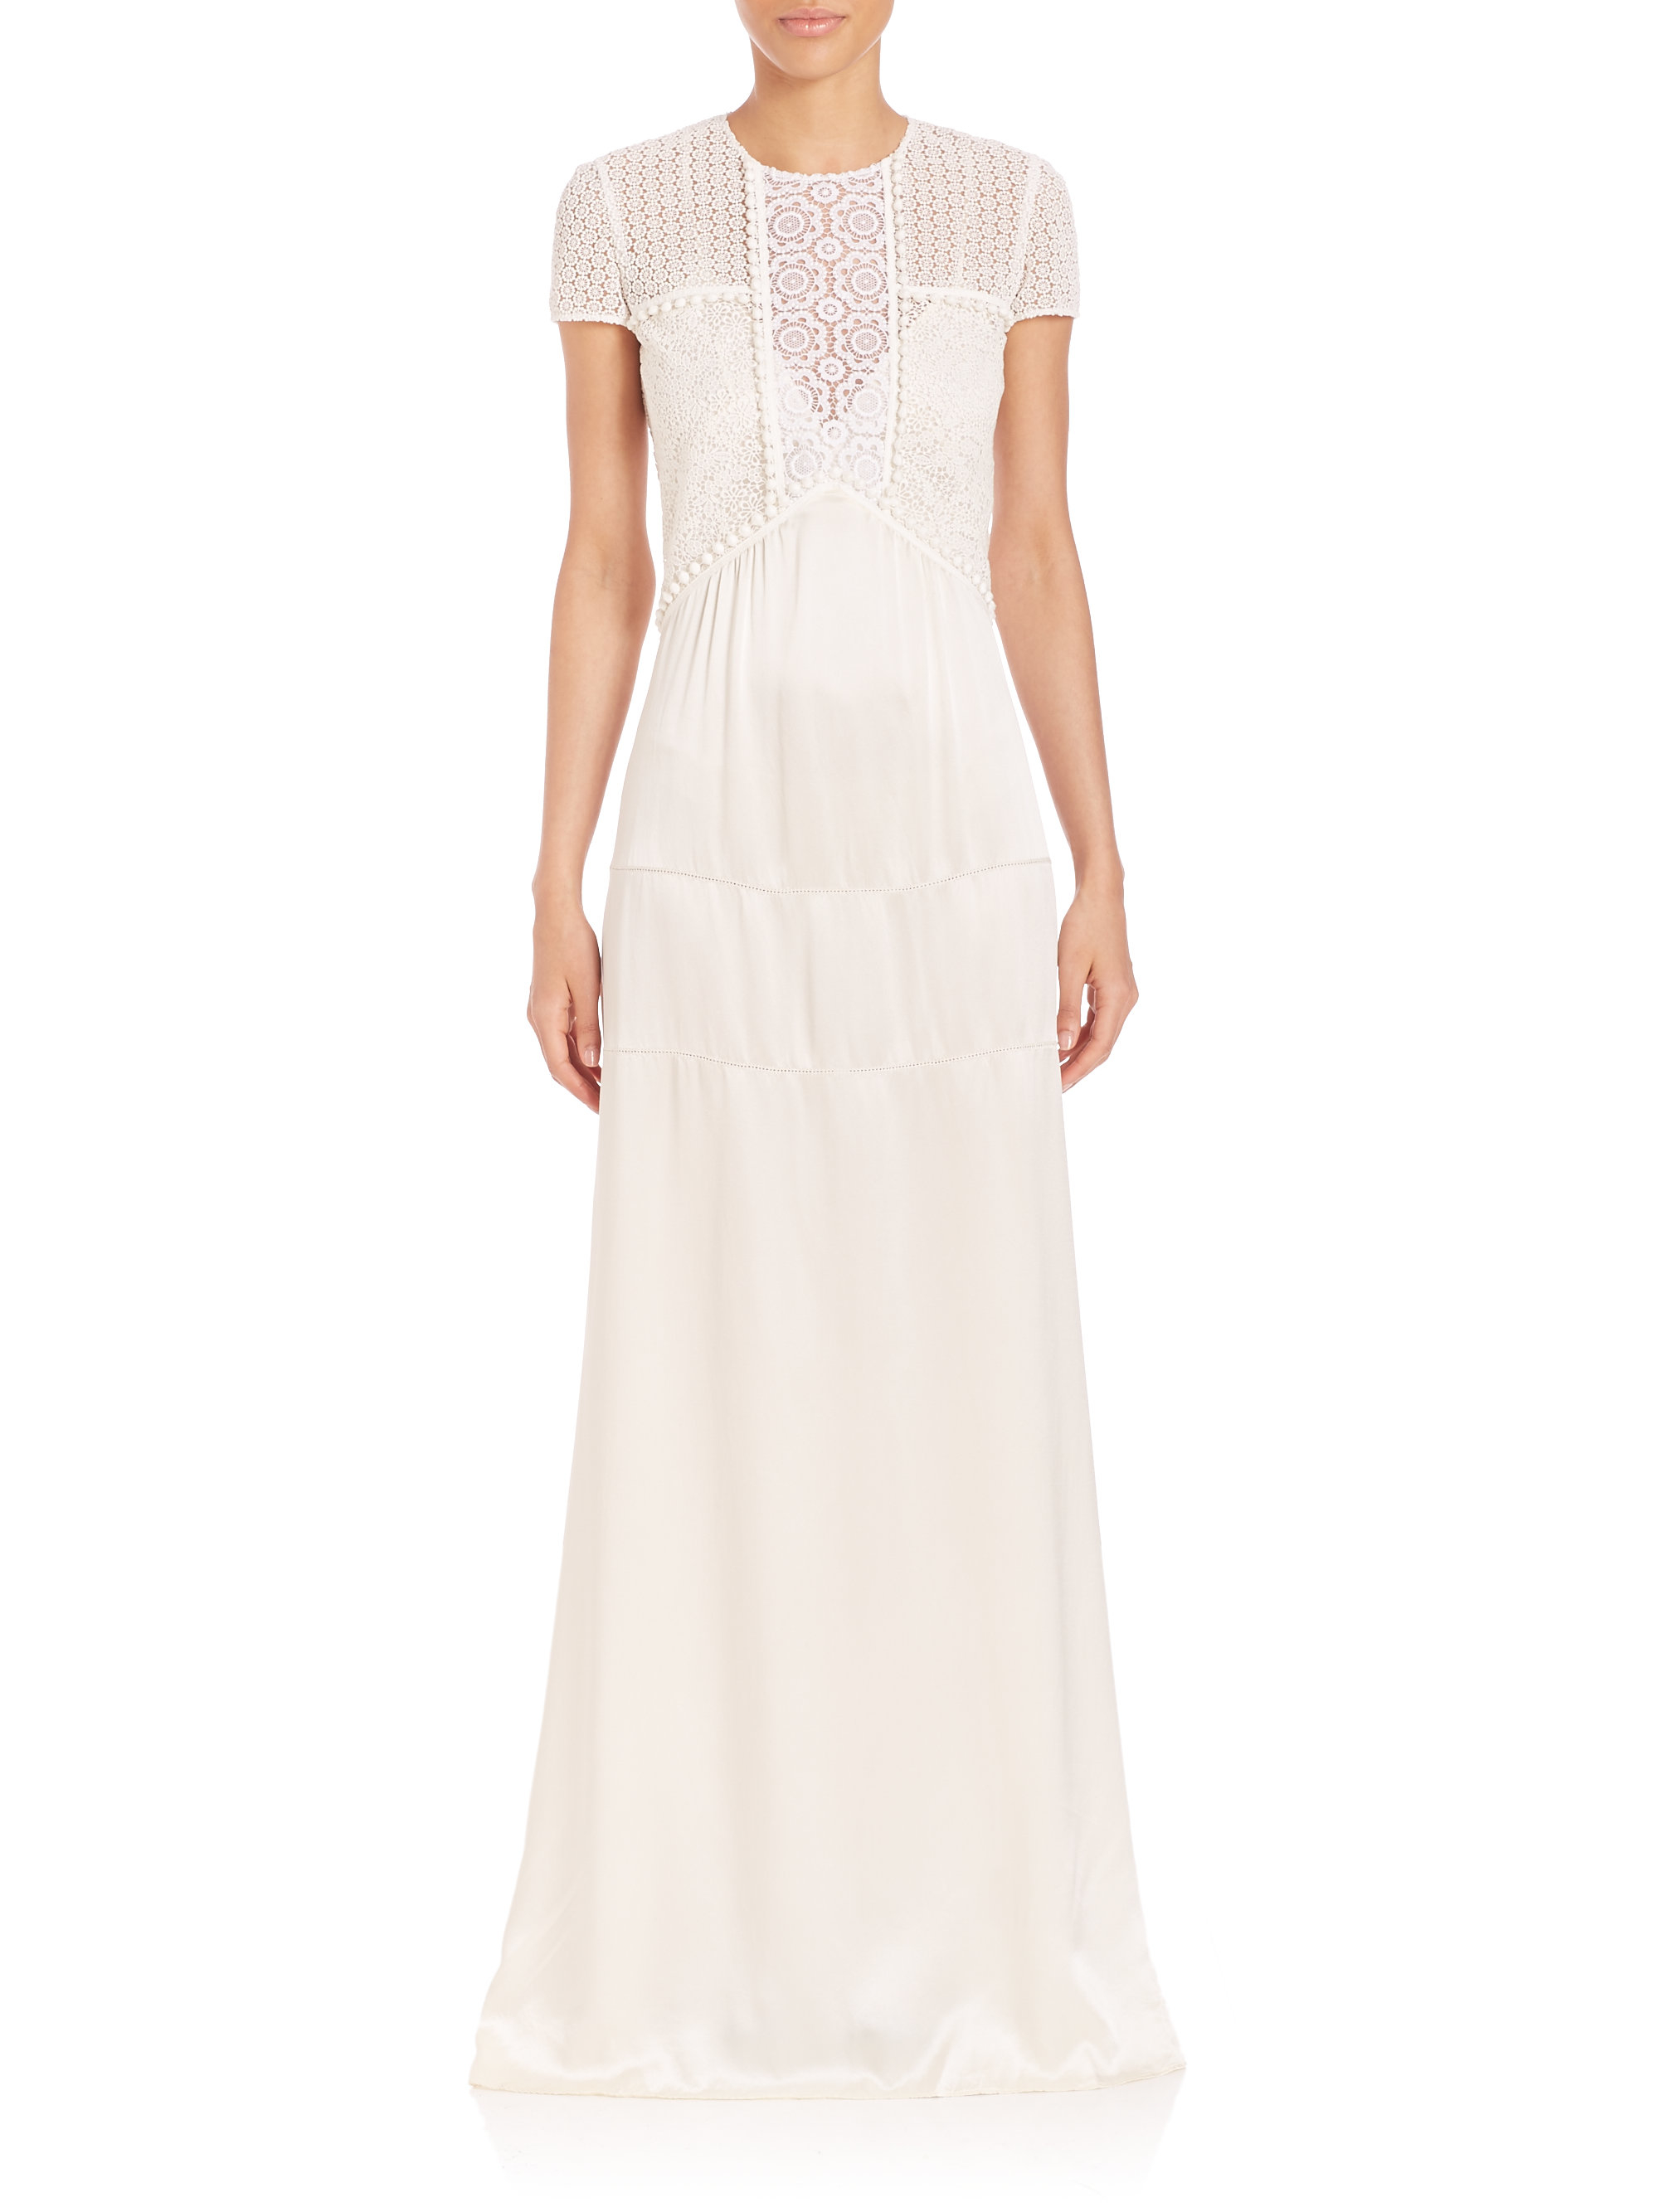 Lyst - Burberry Silk & Lace Gown in White